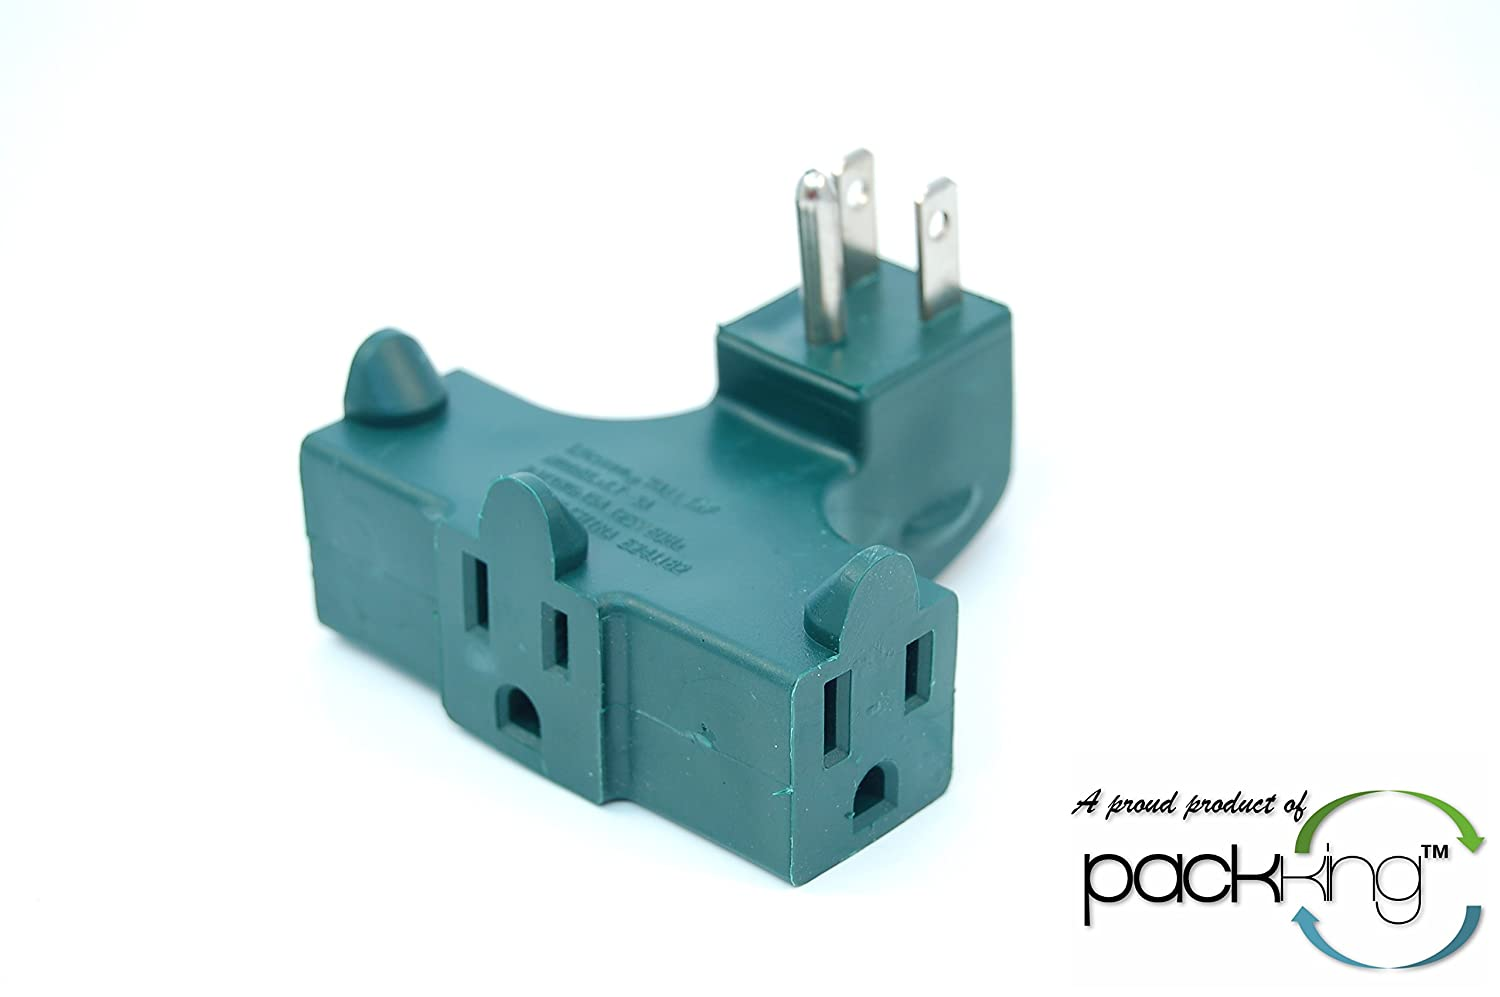 3 Plug Outlet Right Angle 90 Degree Splitter Adapter Plug - Great Behind Chairs! IIT